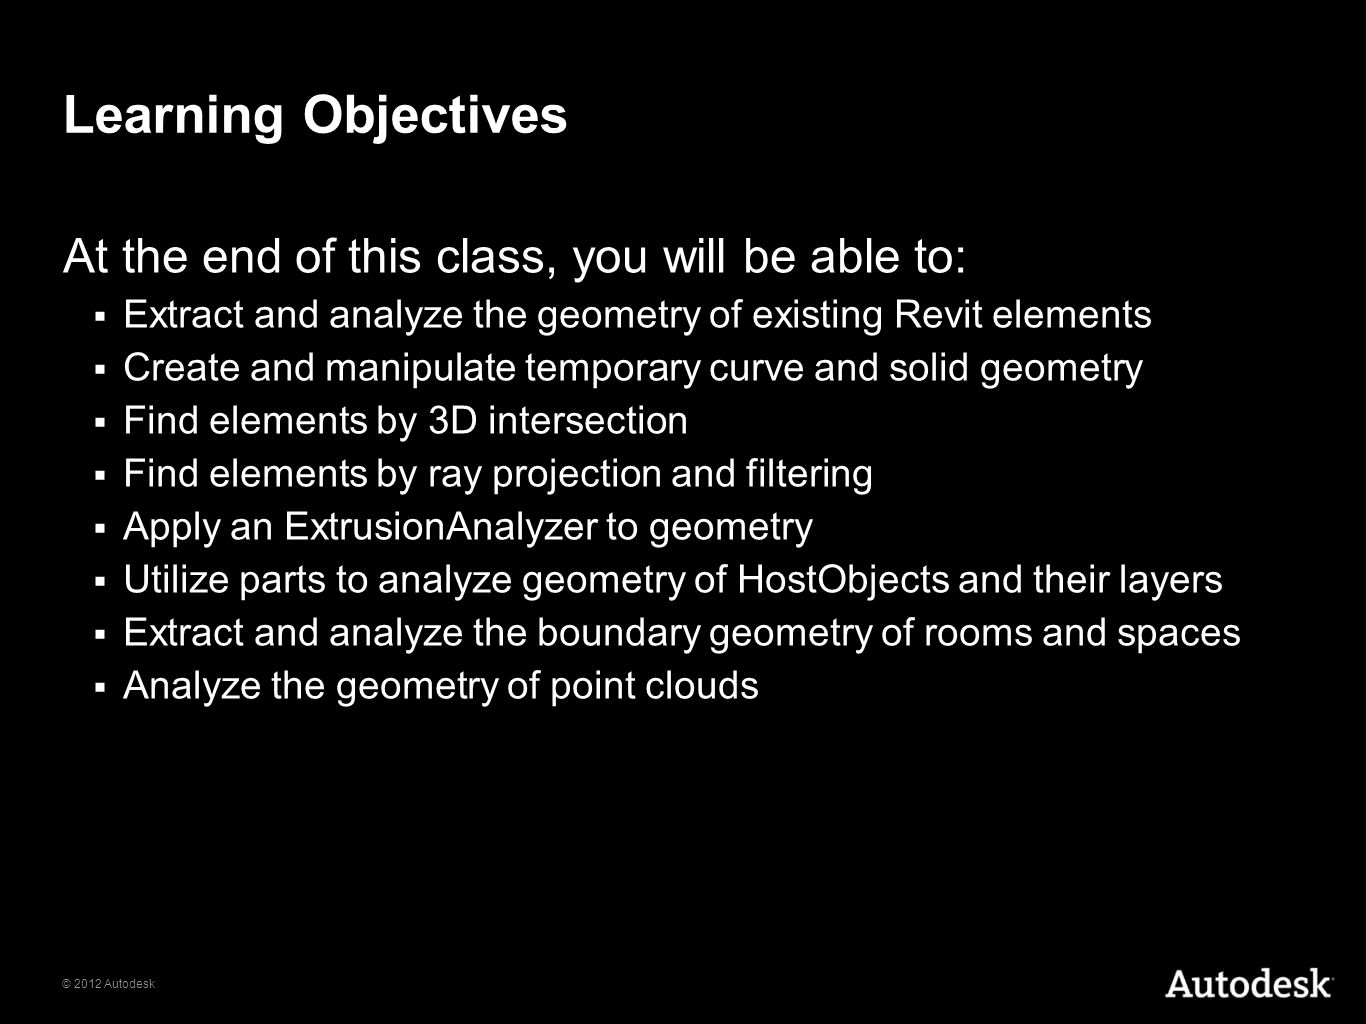 © 2012 Autodesk Learning Objectives At the end of this class, you will be able to: Extract and analyze the geometry of existing Revit elements Create